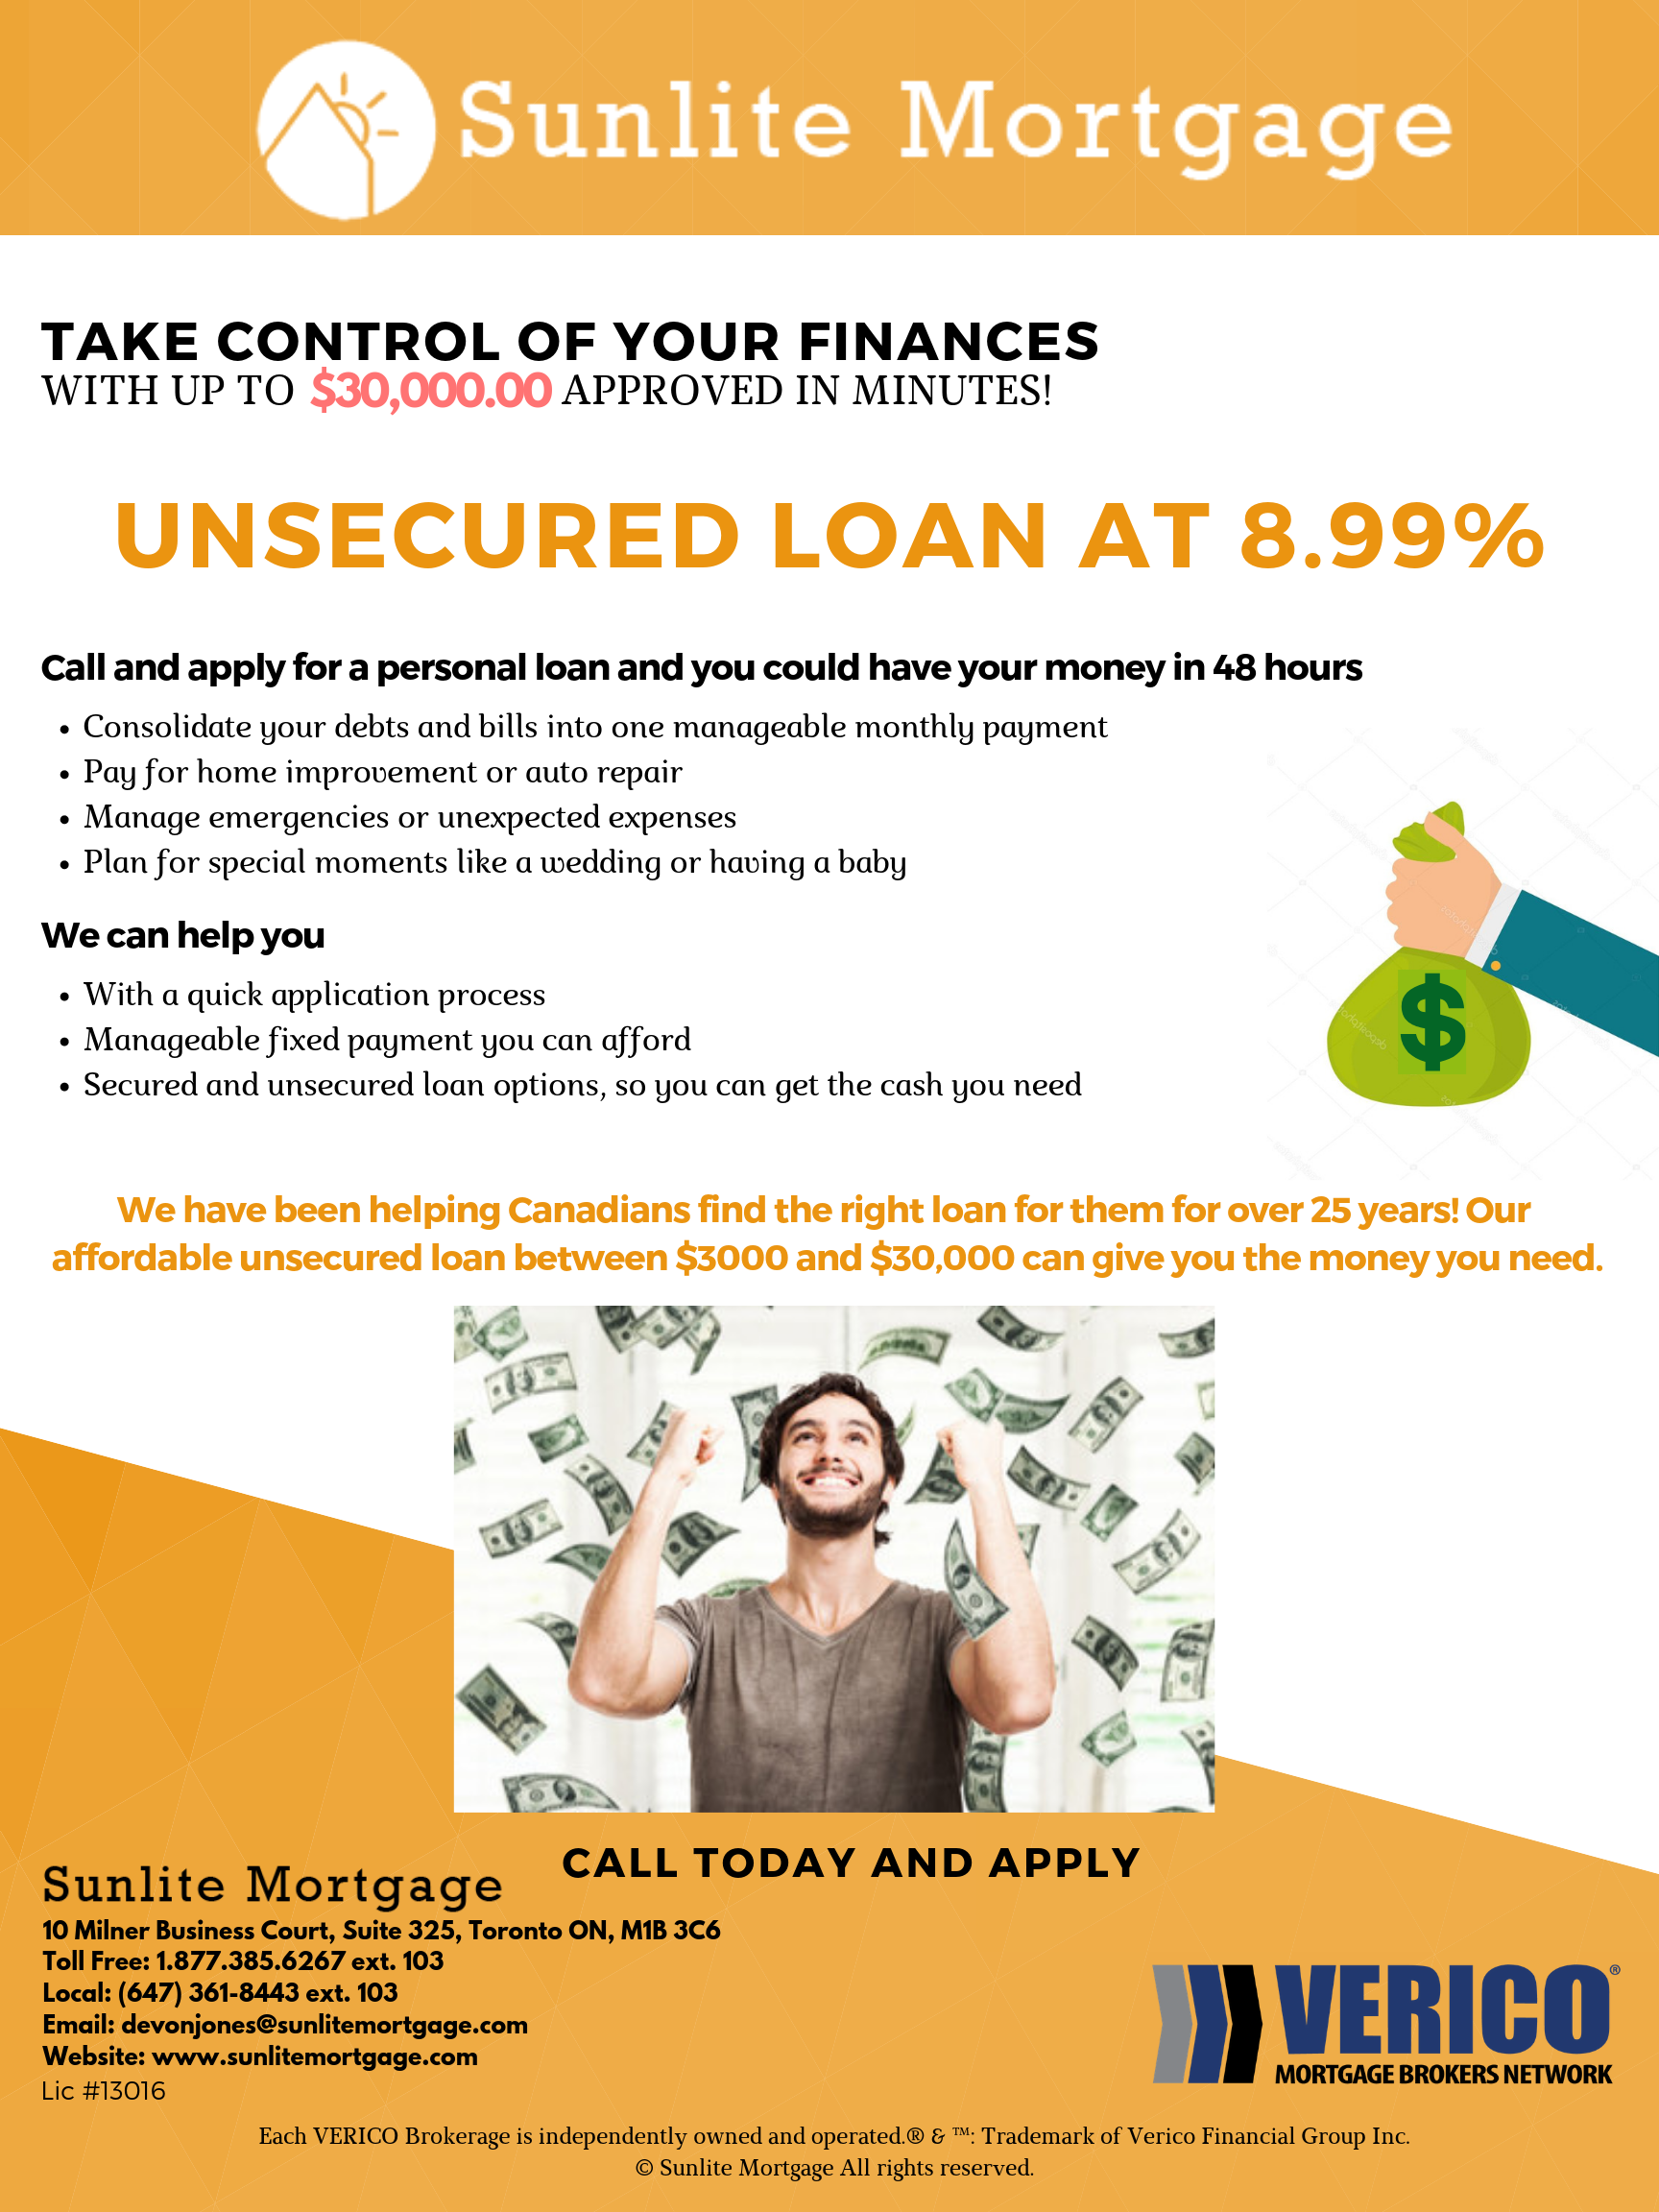 Personal Loans For Homeowners Borrow Between 3 000 00 And 30 000 With A Personal Loan For Homeowners To A Max Mortgage Brokers Home Mortgage Unsecured Loans